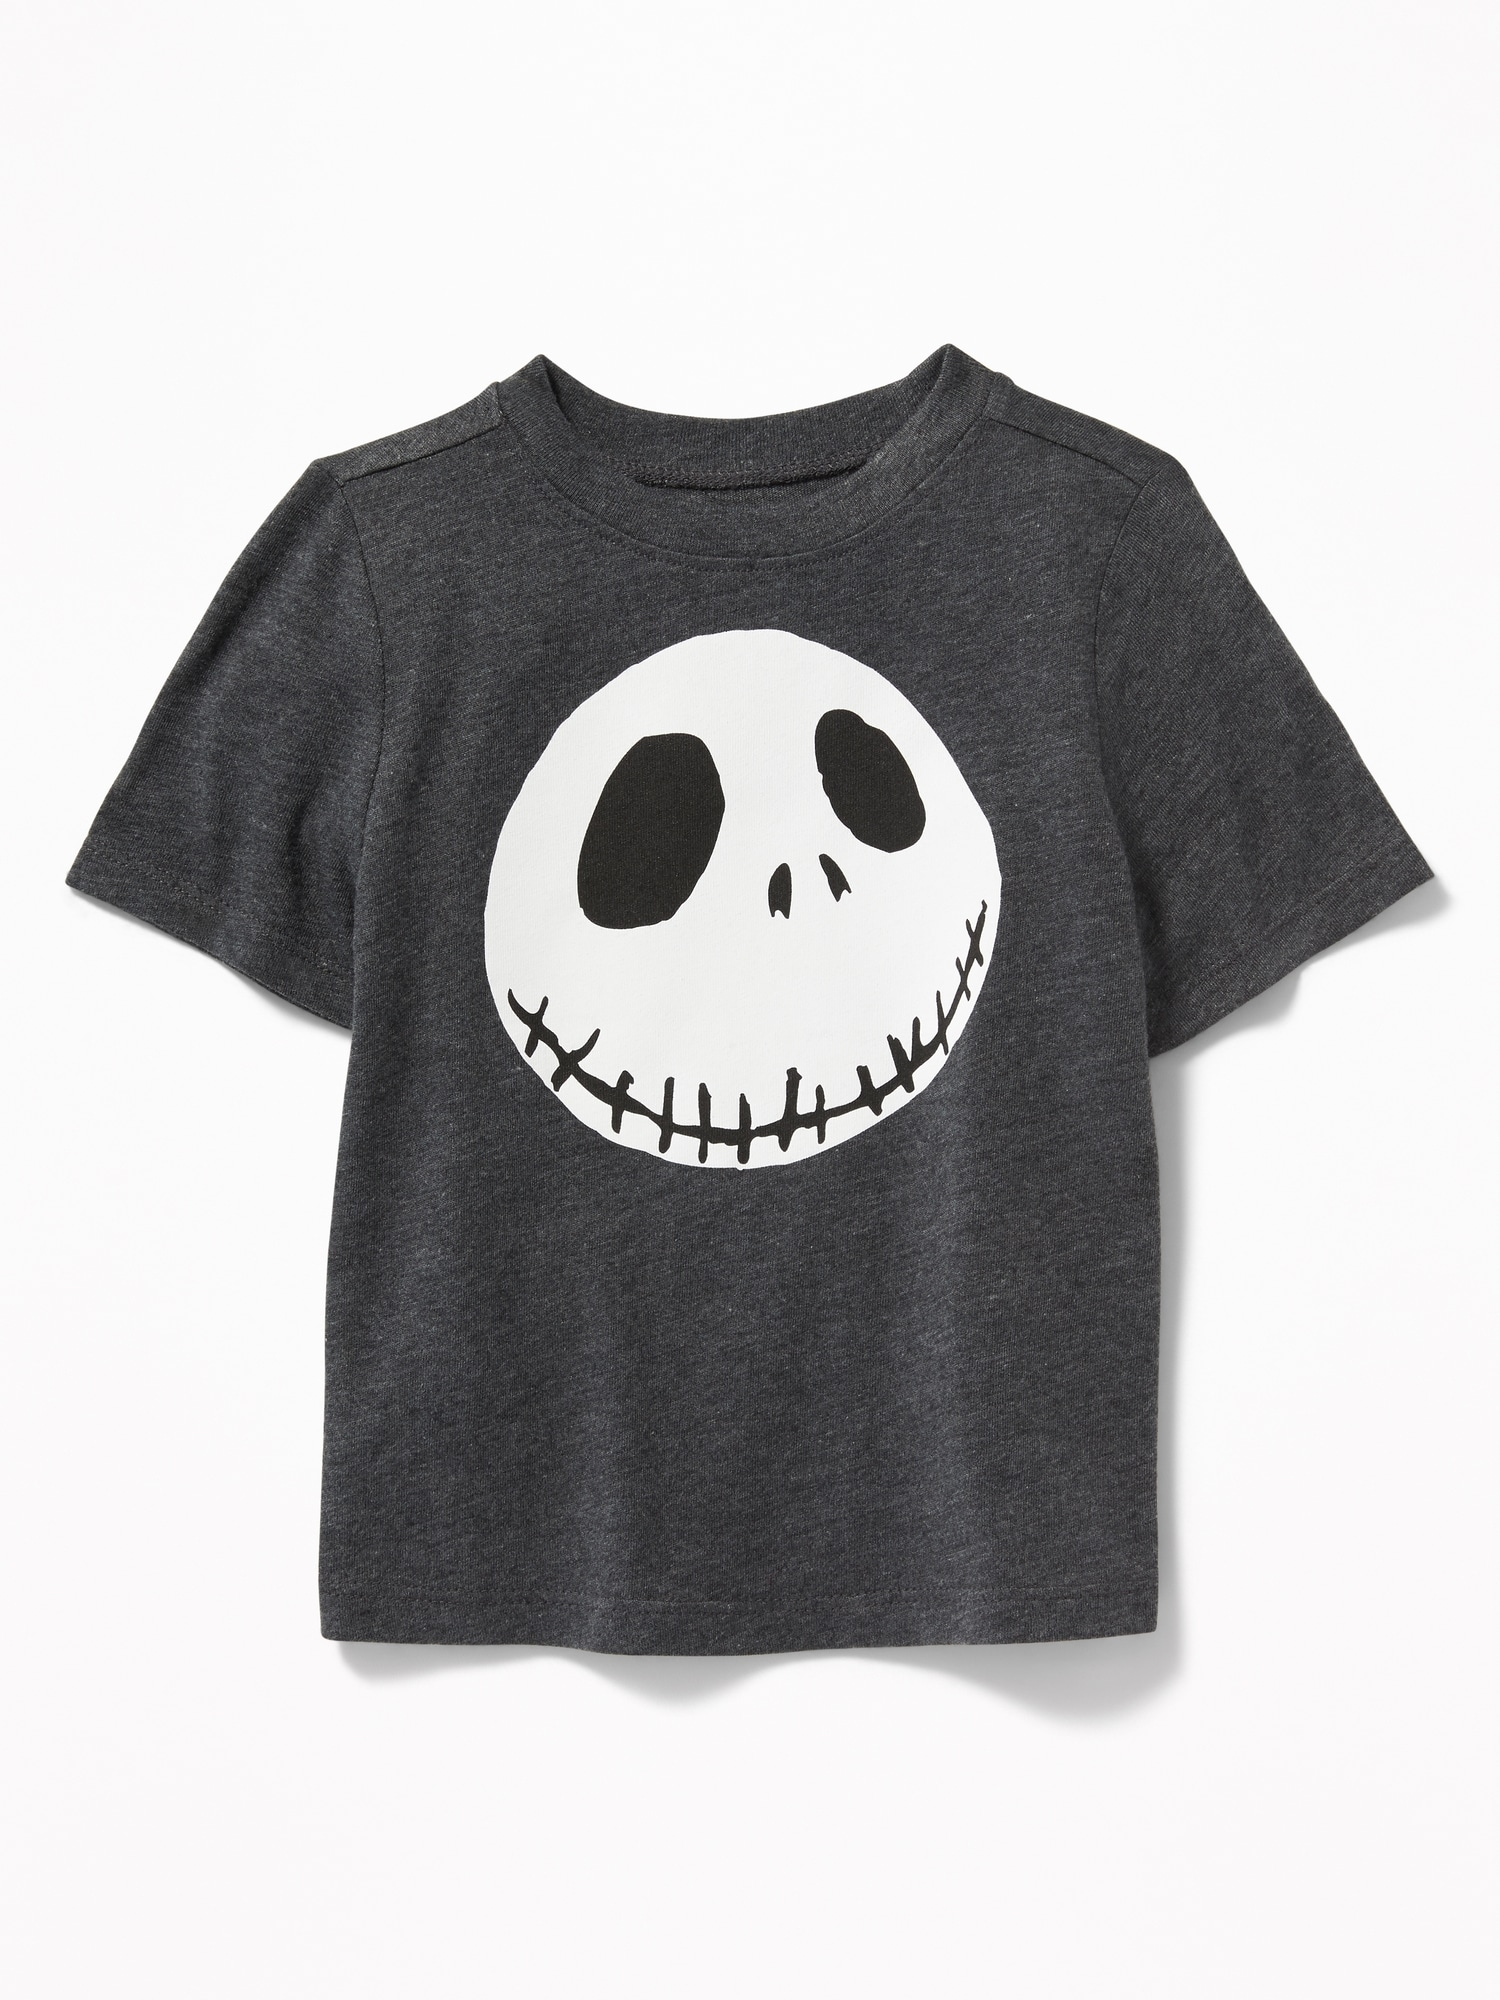 Disney© The Nightmare Before Christmas Tee for Toddler Boys | Old Navy